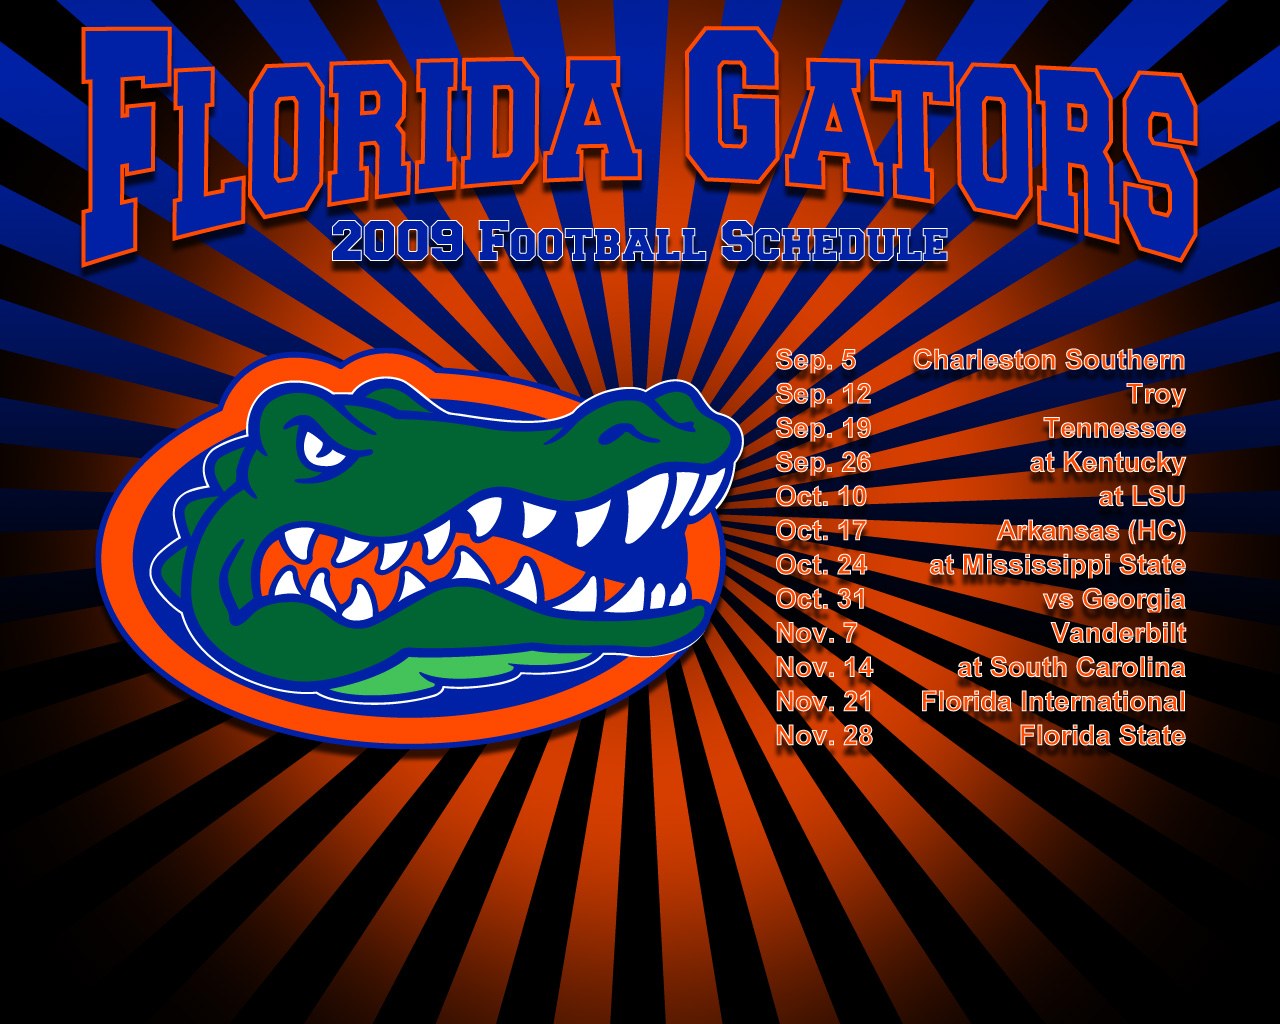 2009 Gator Football Schedule 1280x1024